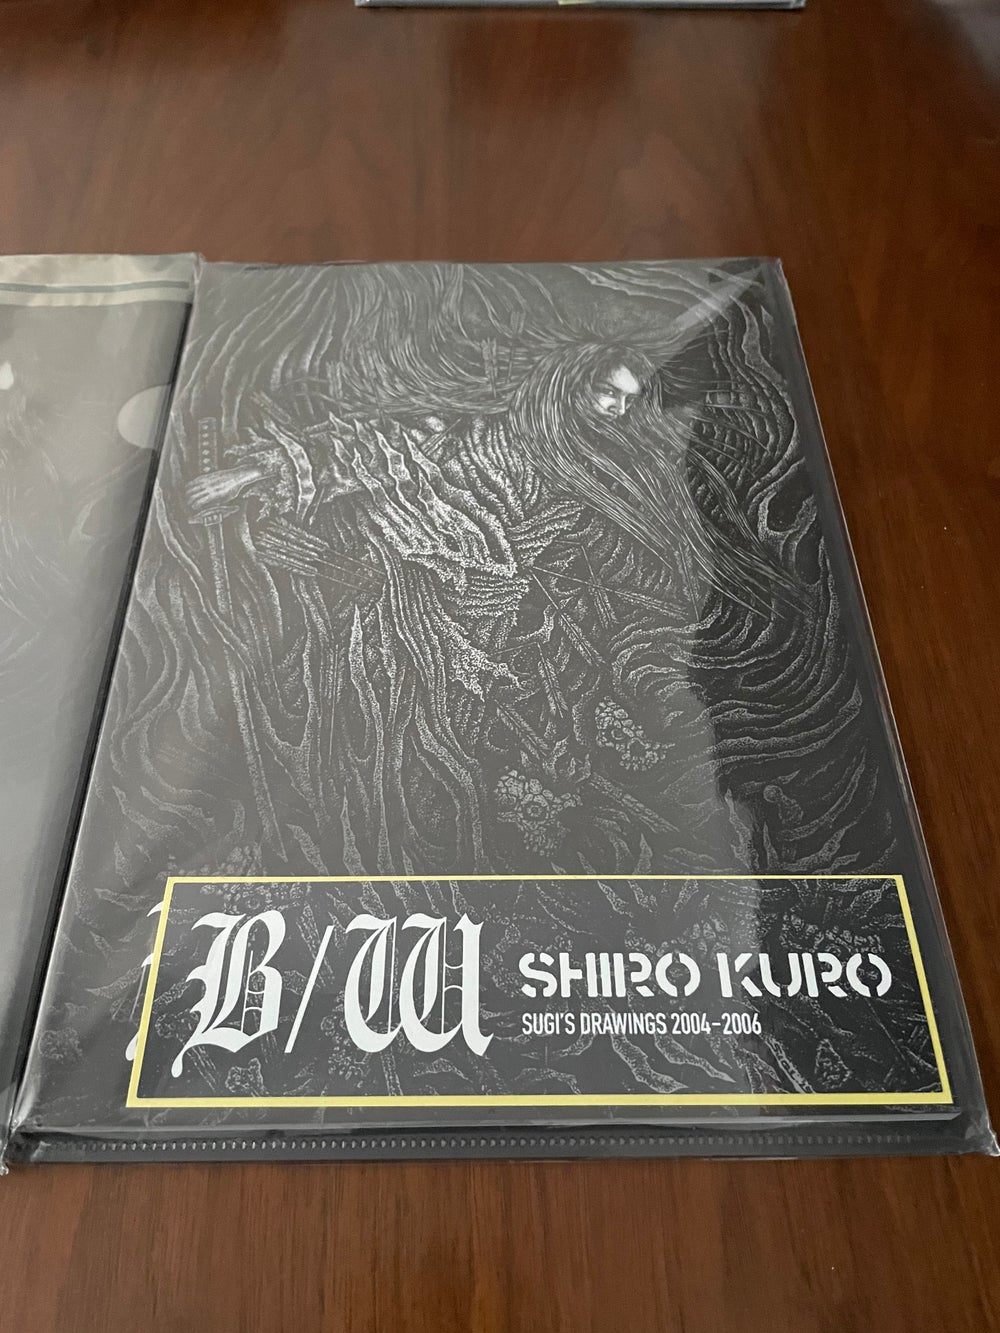 "SHIRO KURO (SUGI) ""Sugi's Drawings 2004-2006"" BOOK"